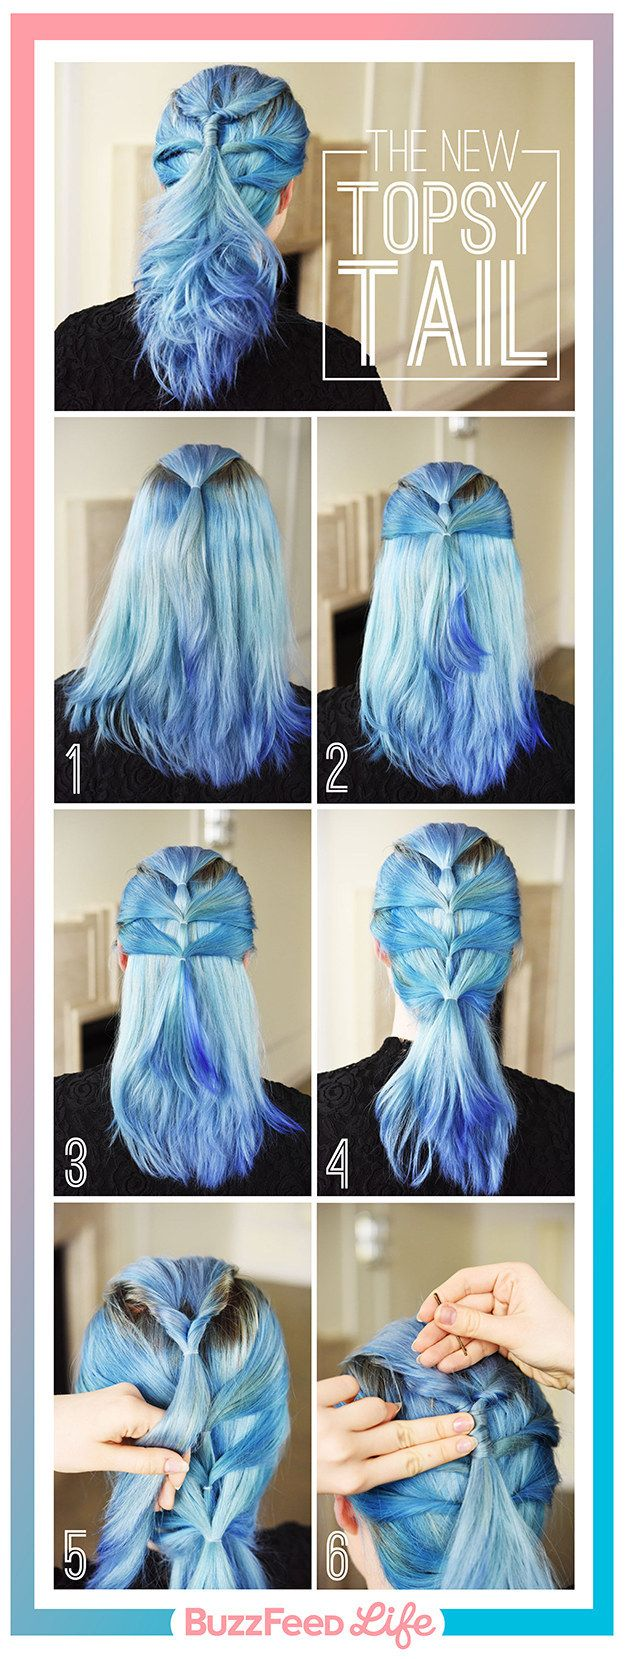 26 Incredible Hairstyles You Can Learn In 10 Steps Or Less Hair